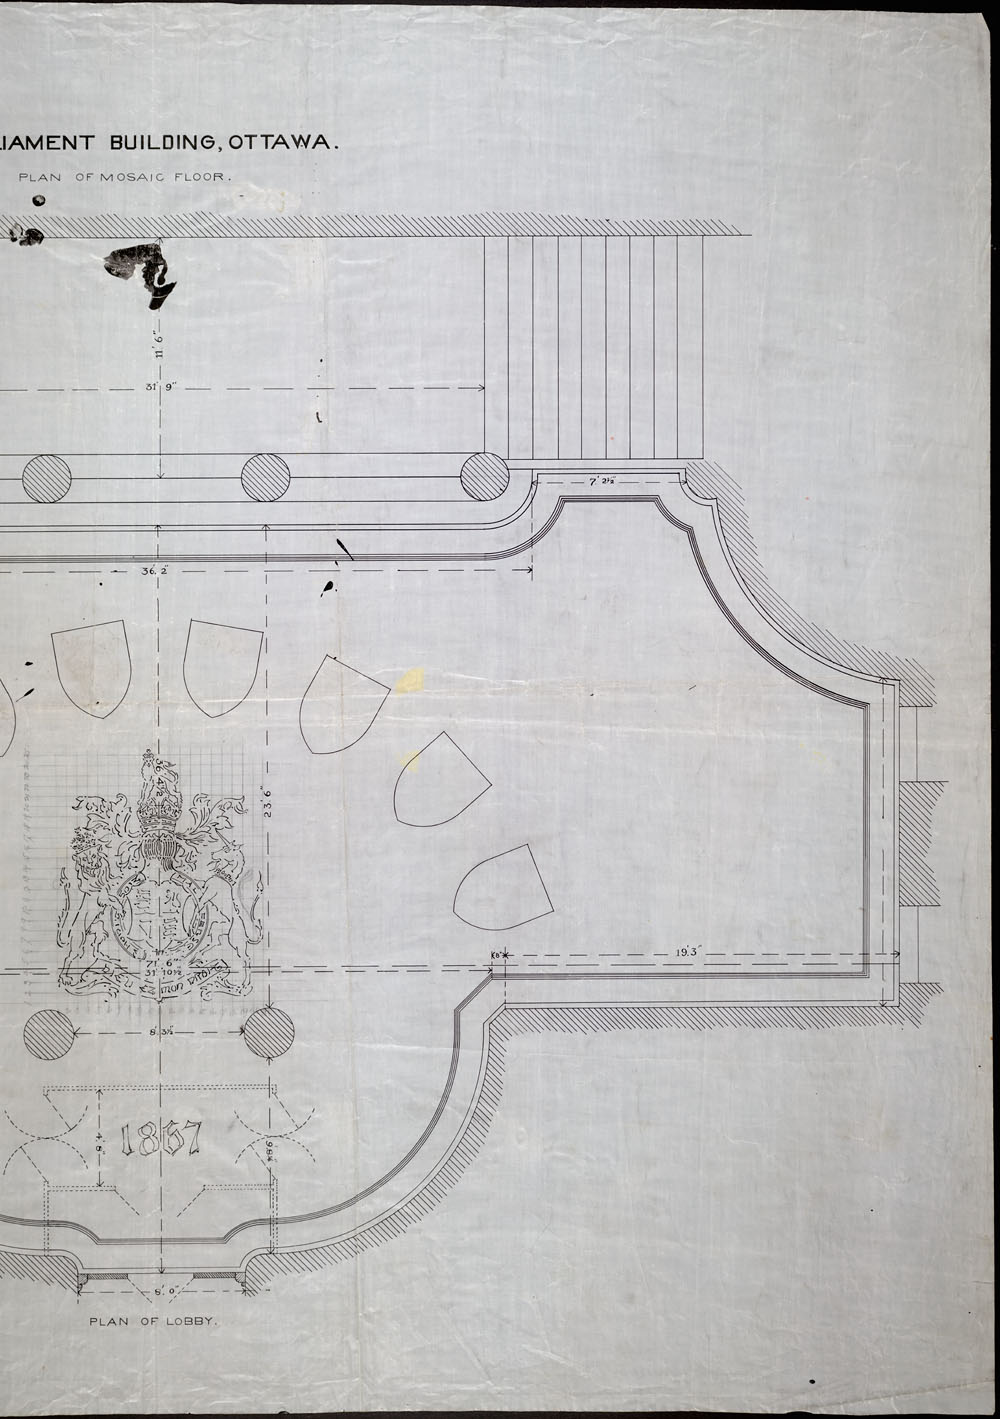 Old Centre Block, Parliament Buildings, Ottawa.  Plan of mosaic floor [inlobby]. (item 2)